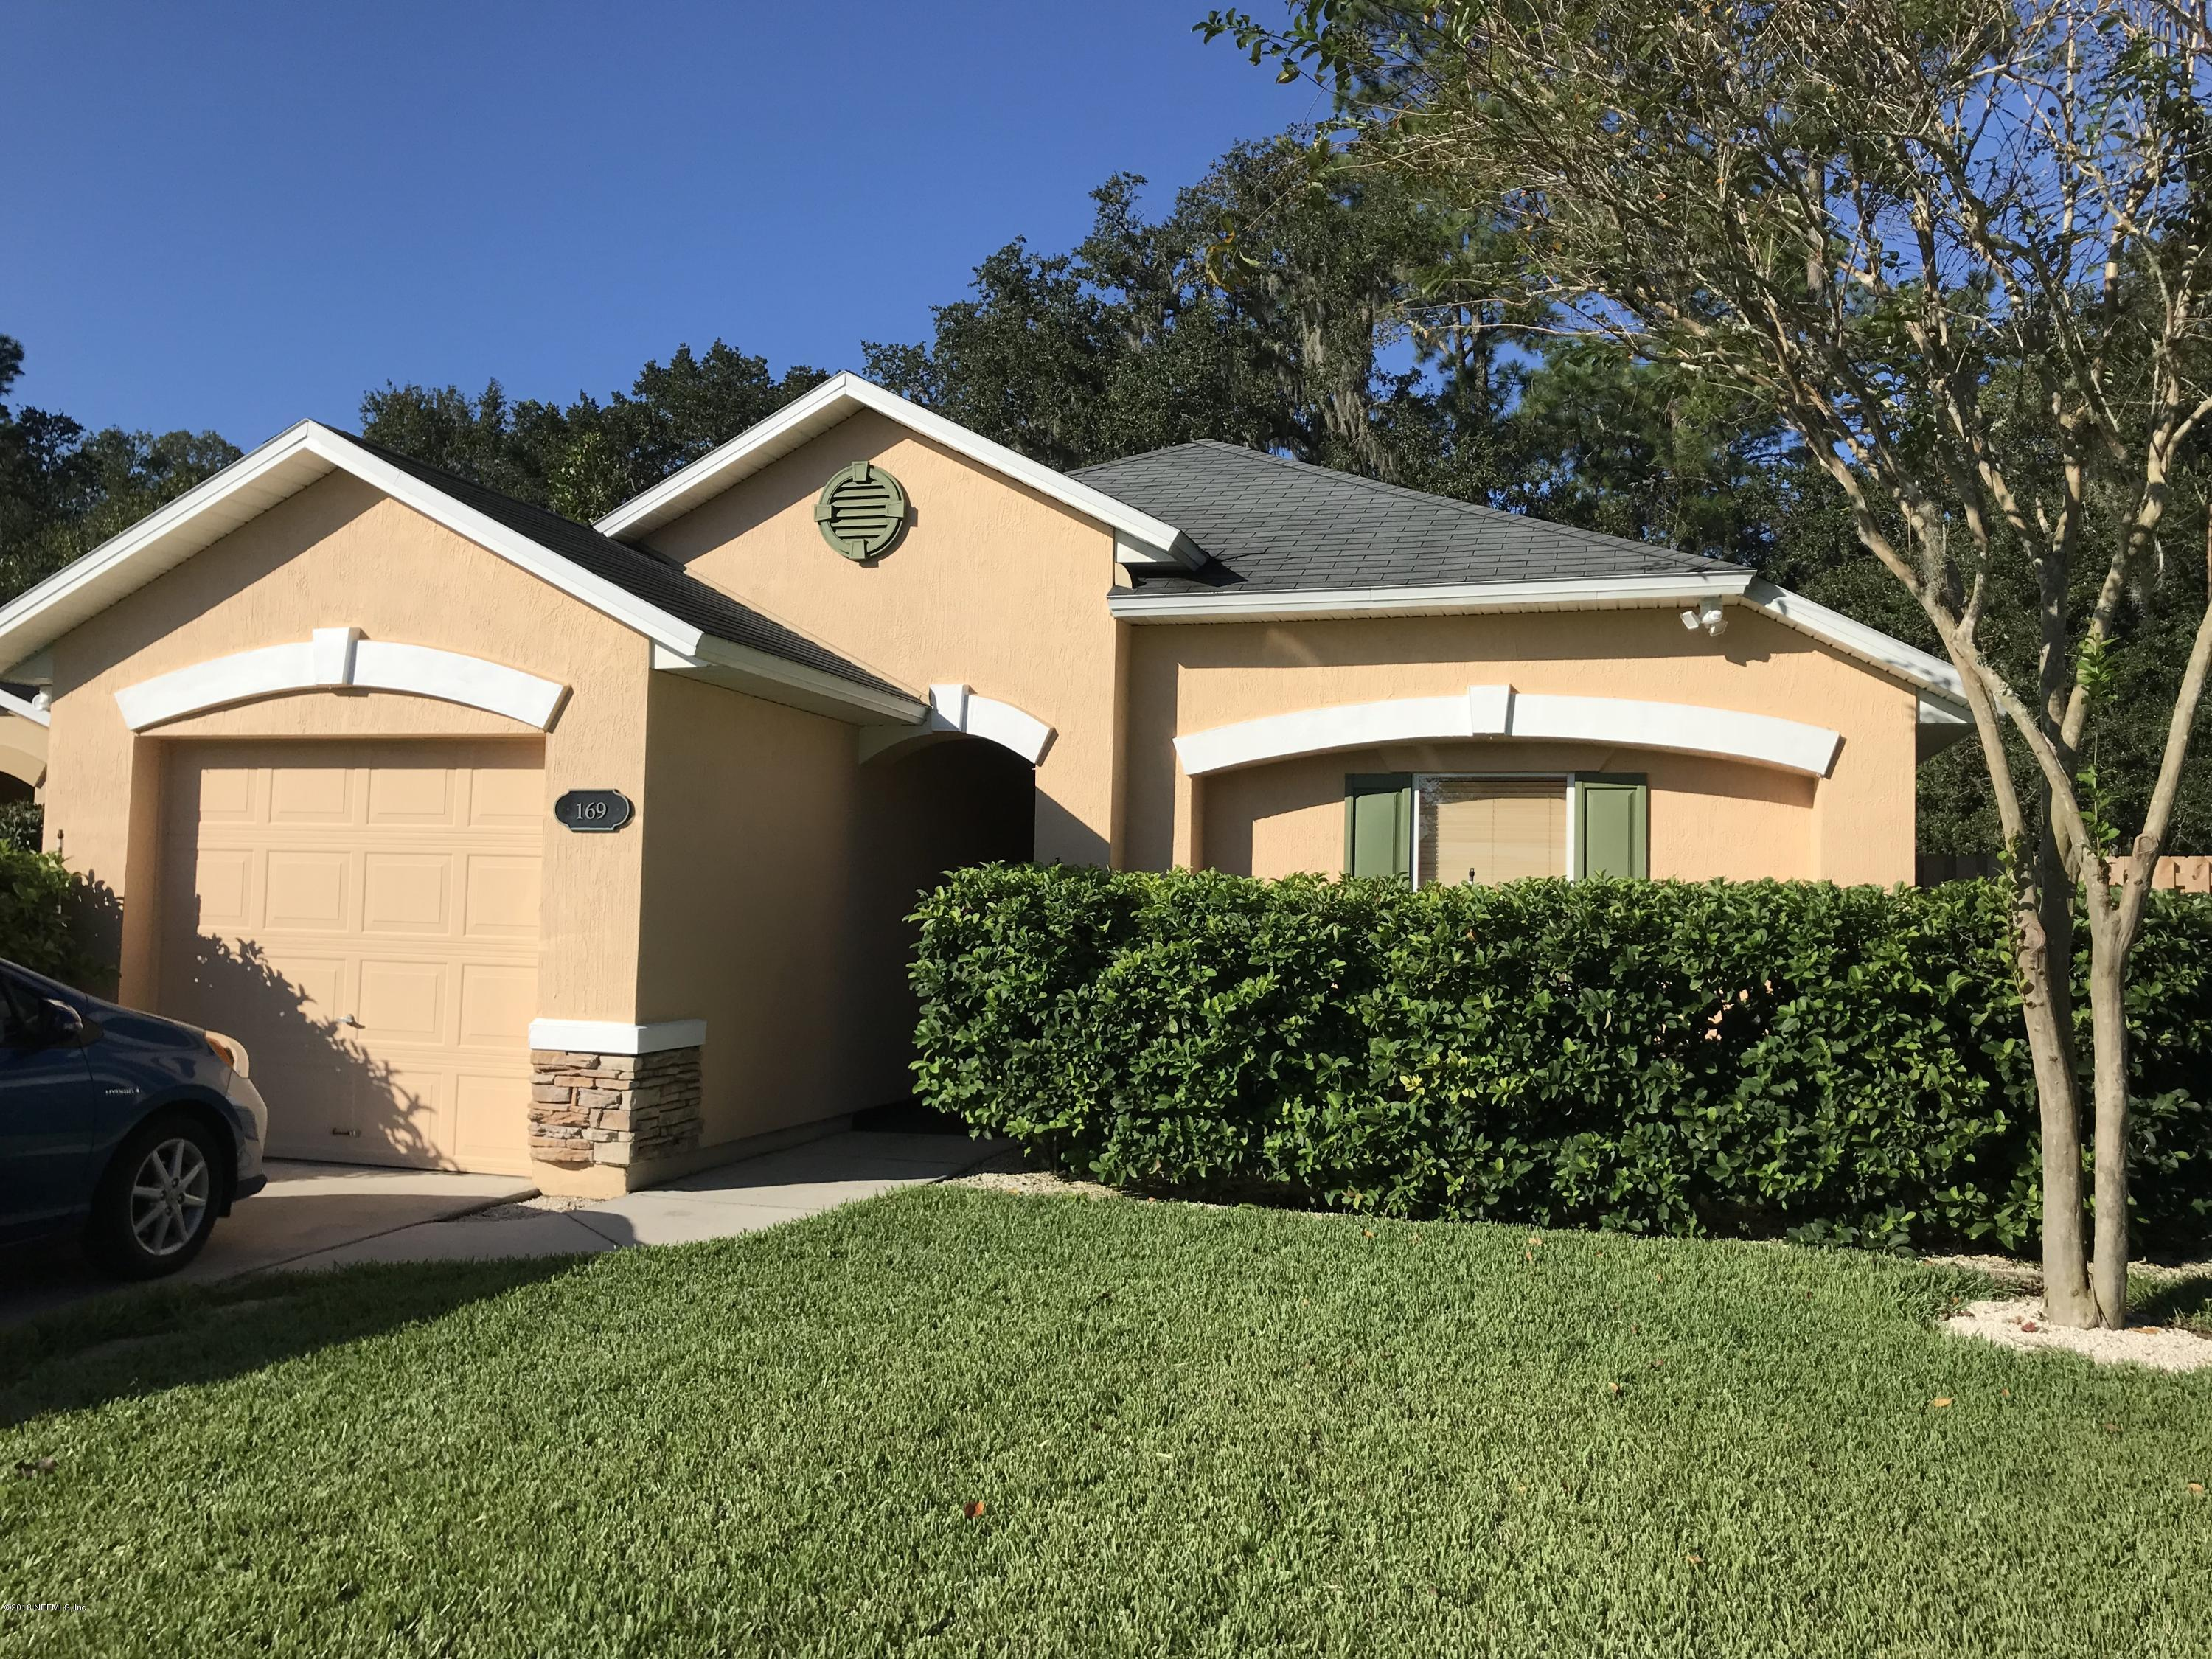 169 BUCK RUN, ST AUGUSTINE, FLORIDA 32092, 3 Bedrooms Bedrooms, ,2 BathroomsBathrooms,Residential - single family,For sale,BUCK RUN,963336